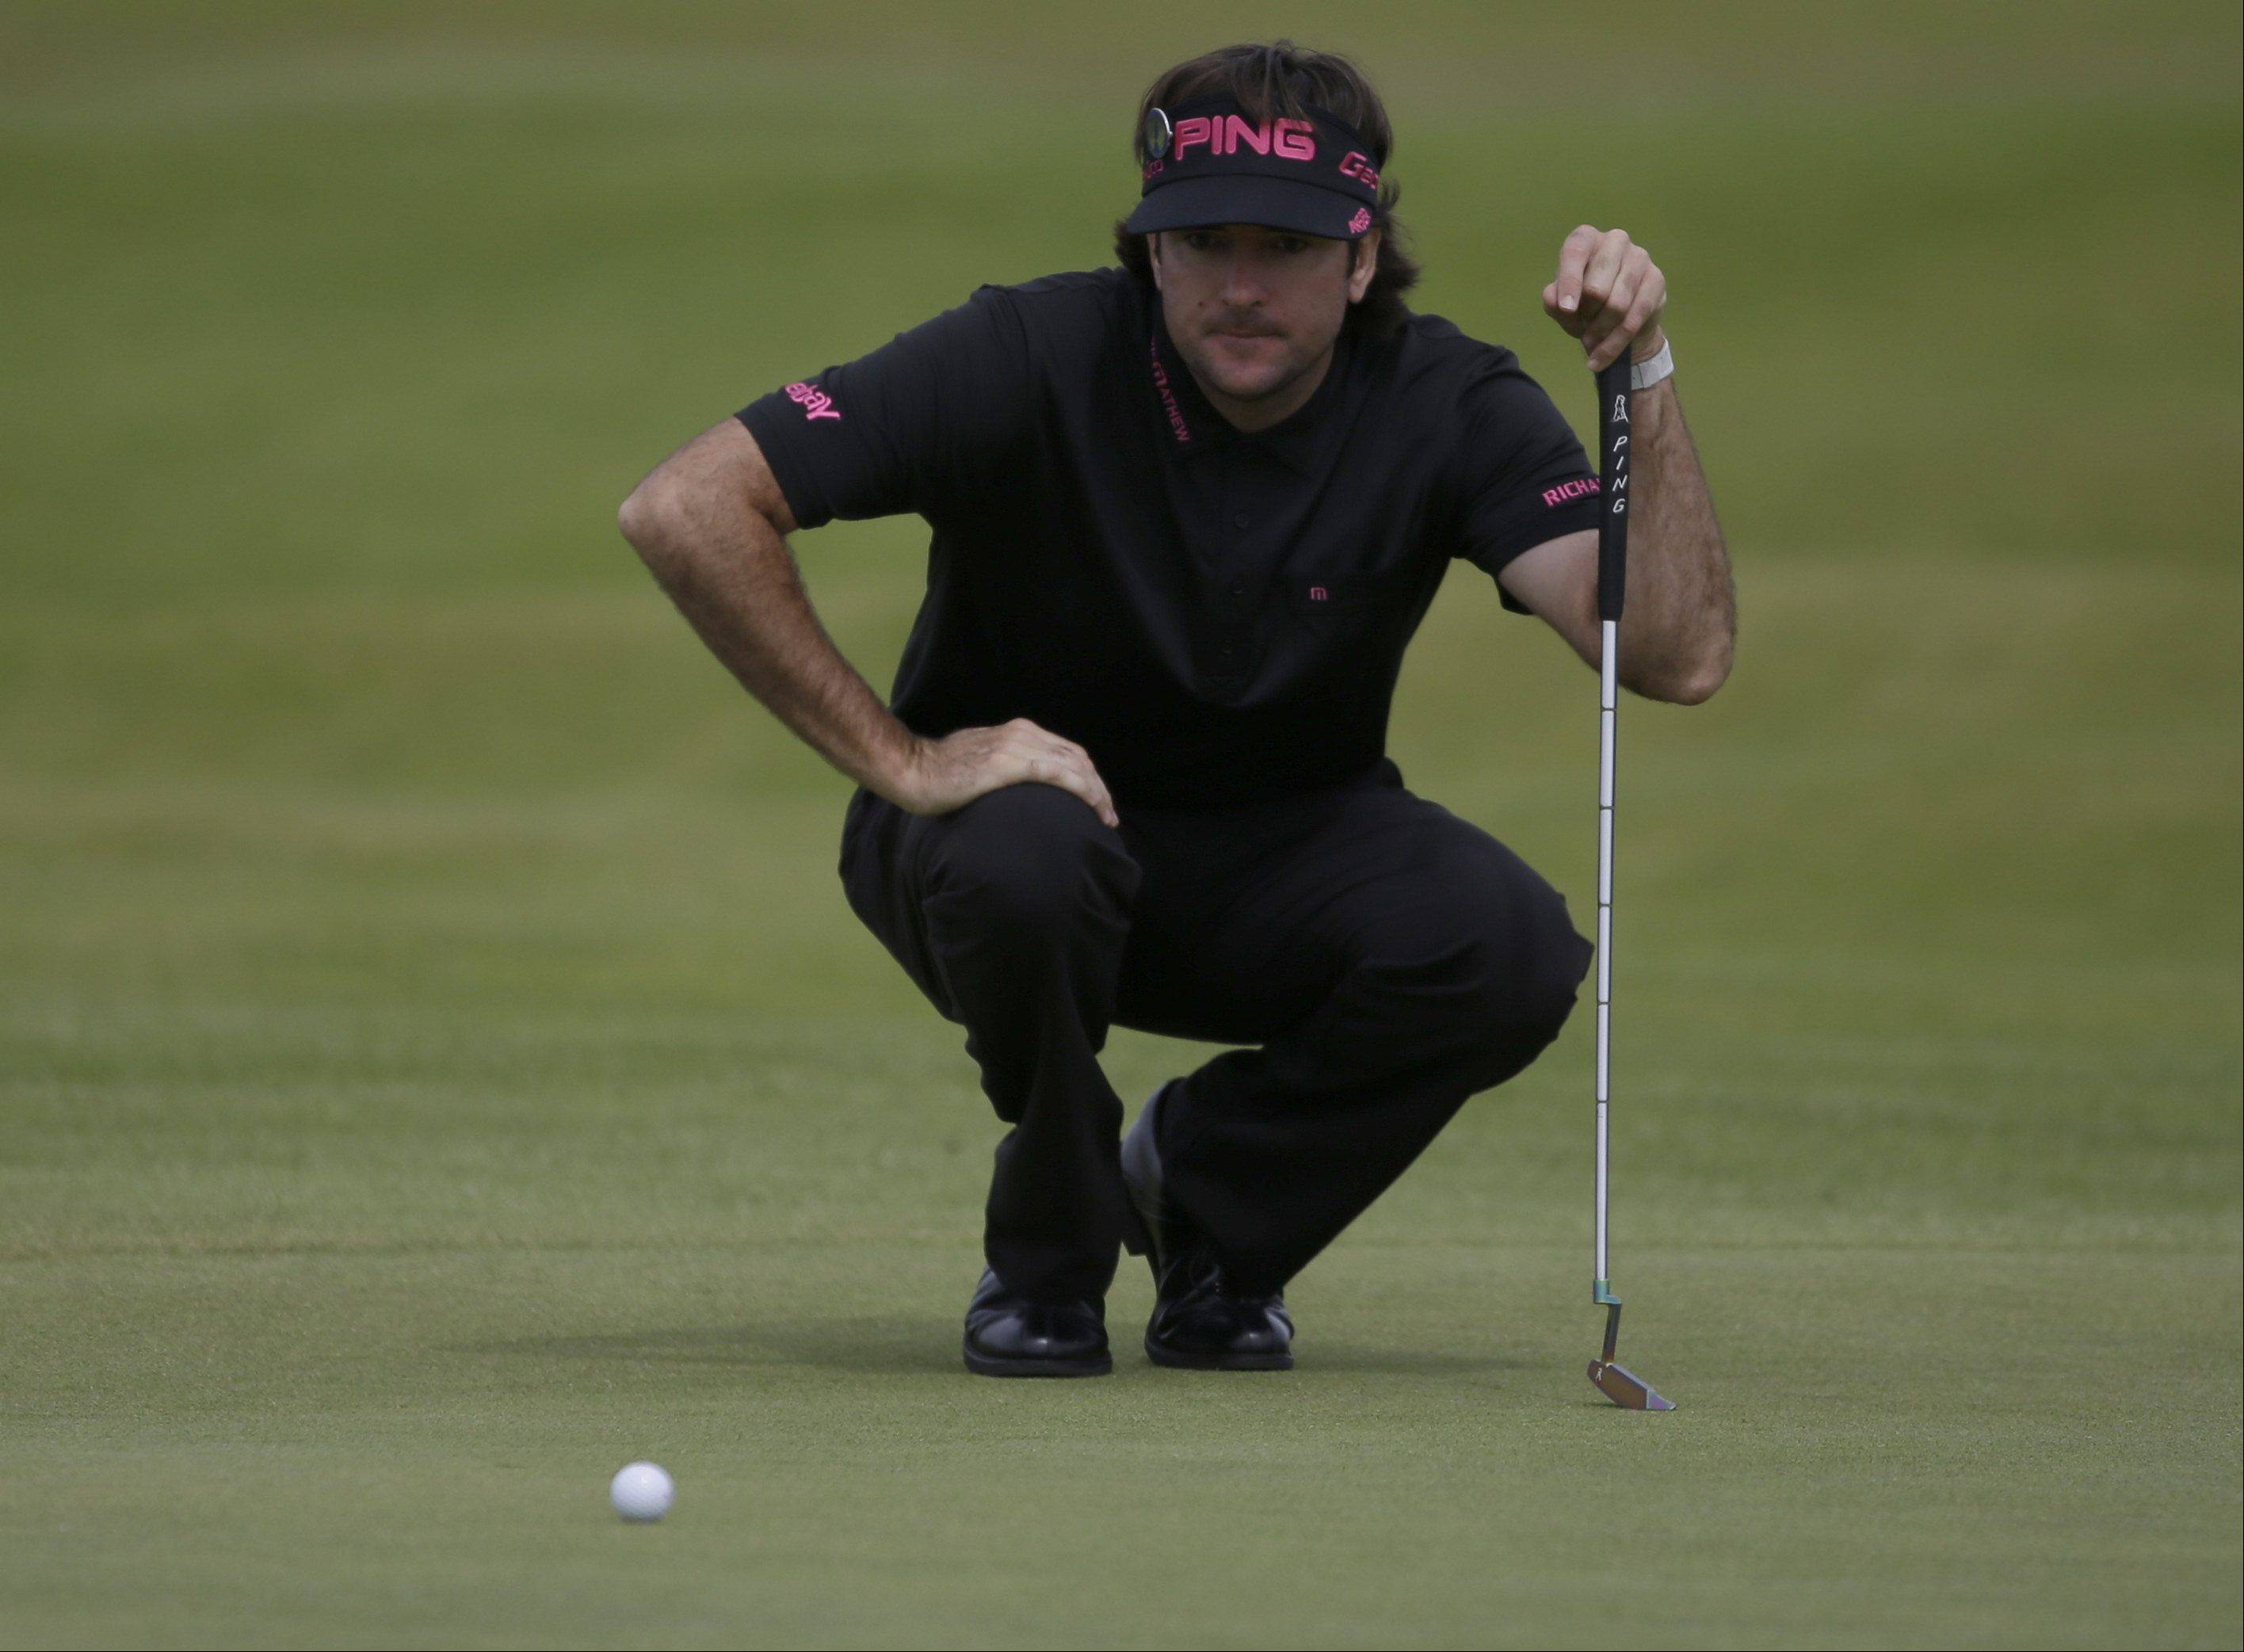 Bubba Watson of the United States lines up a putt on the 15th green at Royal Lytham & St Annes golf club during the third round of the British Open Golf Championship, Lytham St Annes, England, Saturday, July 21, 2012.